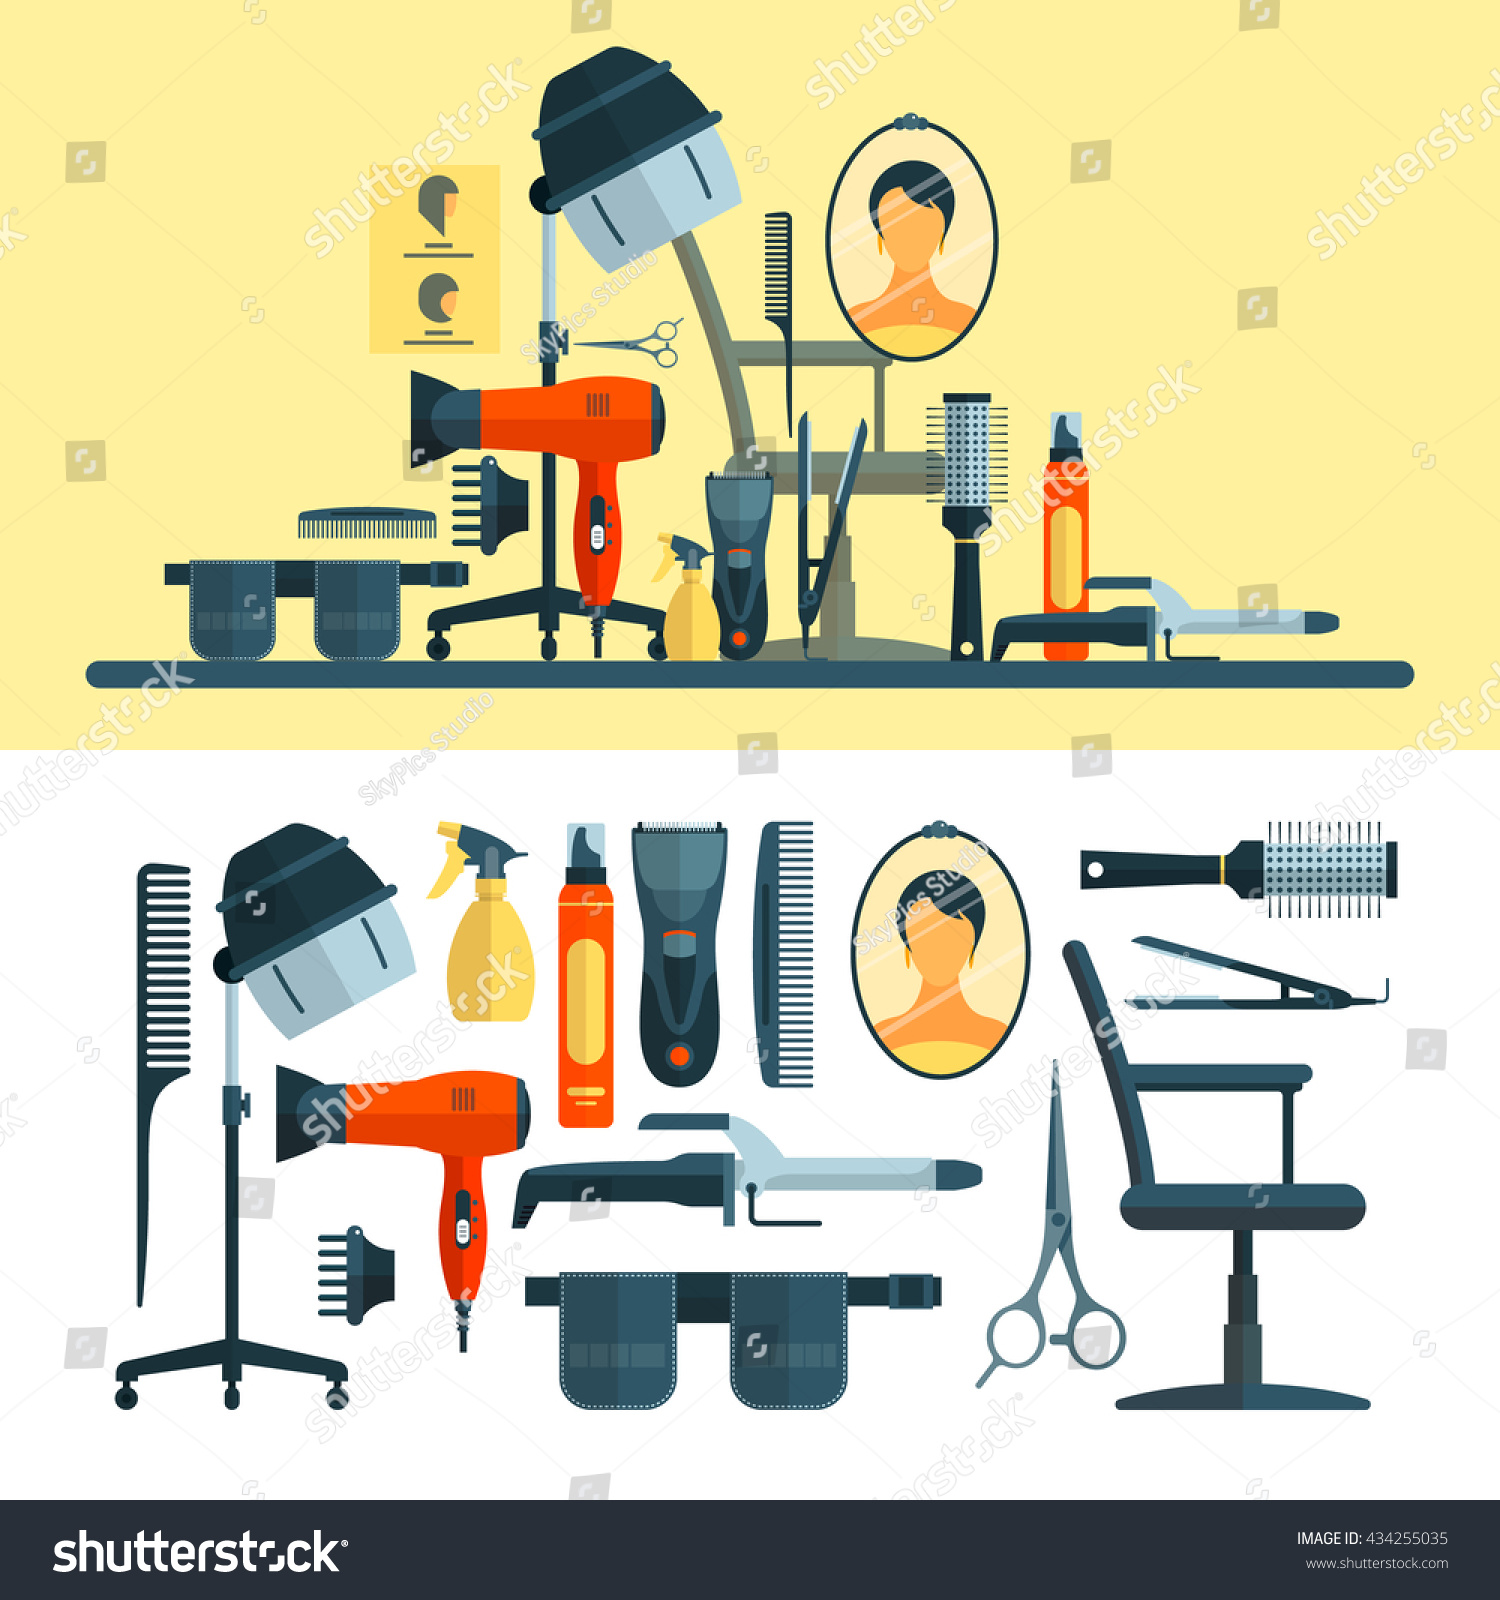 Hair salon chair isolated stock photos illustrations and vector art - Vector Set Of Hairdresser Objects And Tools Isolated On White Background Hair Salon Equipment Icons